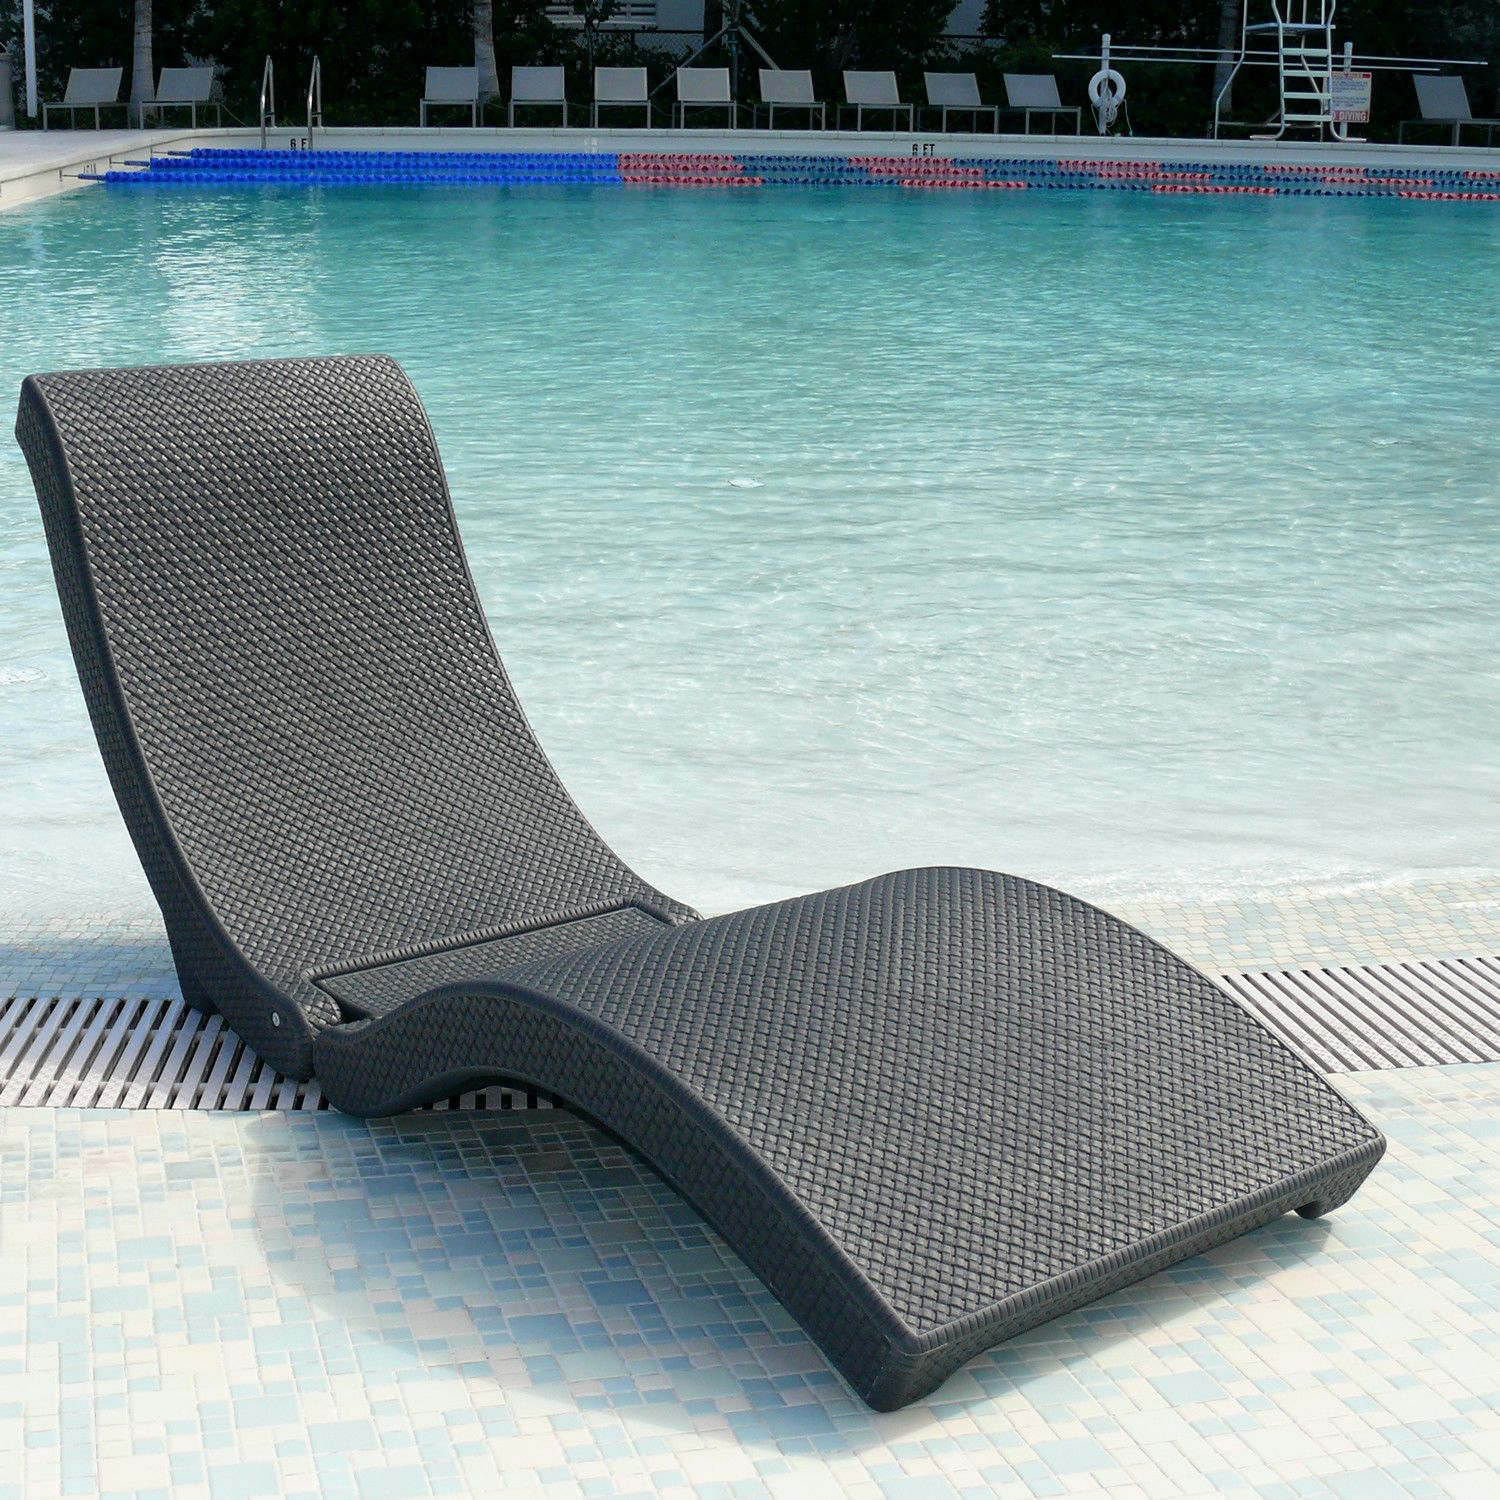 Water In Pool Chaise Lounge Chairs